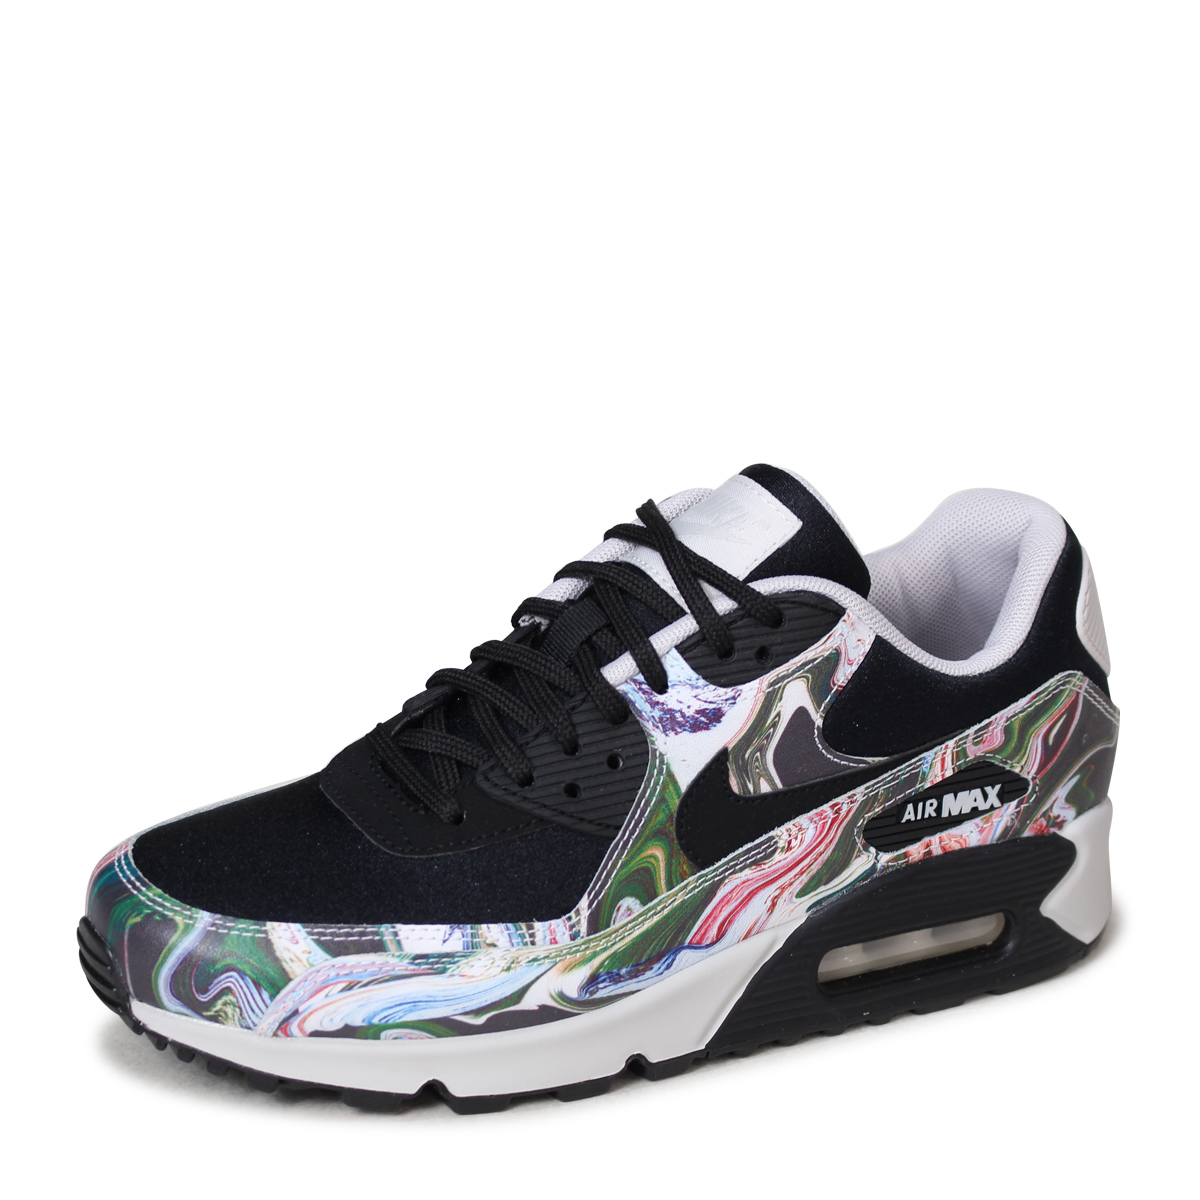 ALLSPORTS: Nike NIKE Air Max 90 sneakers men AIR MAX 90 PRNT